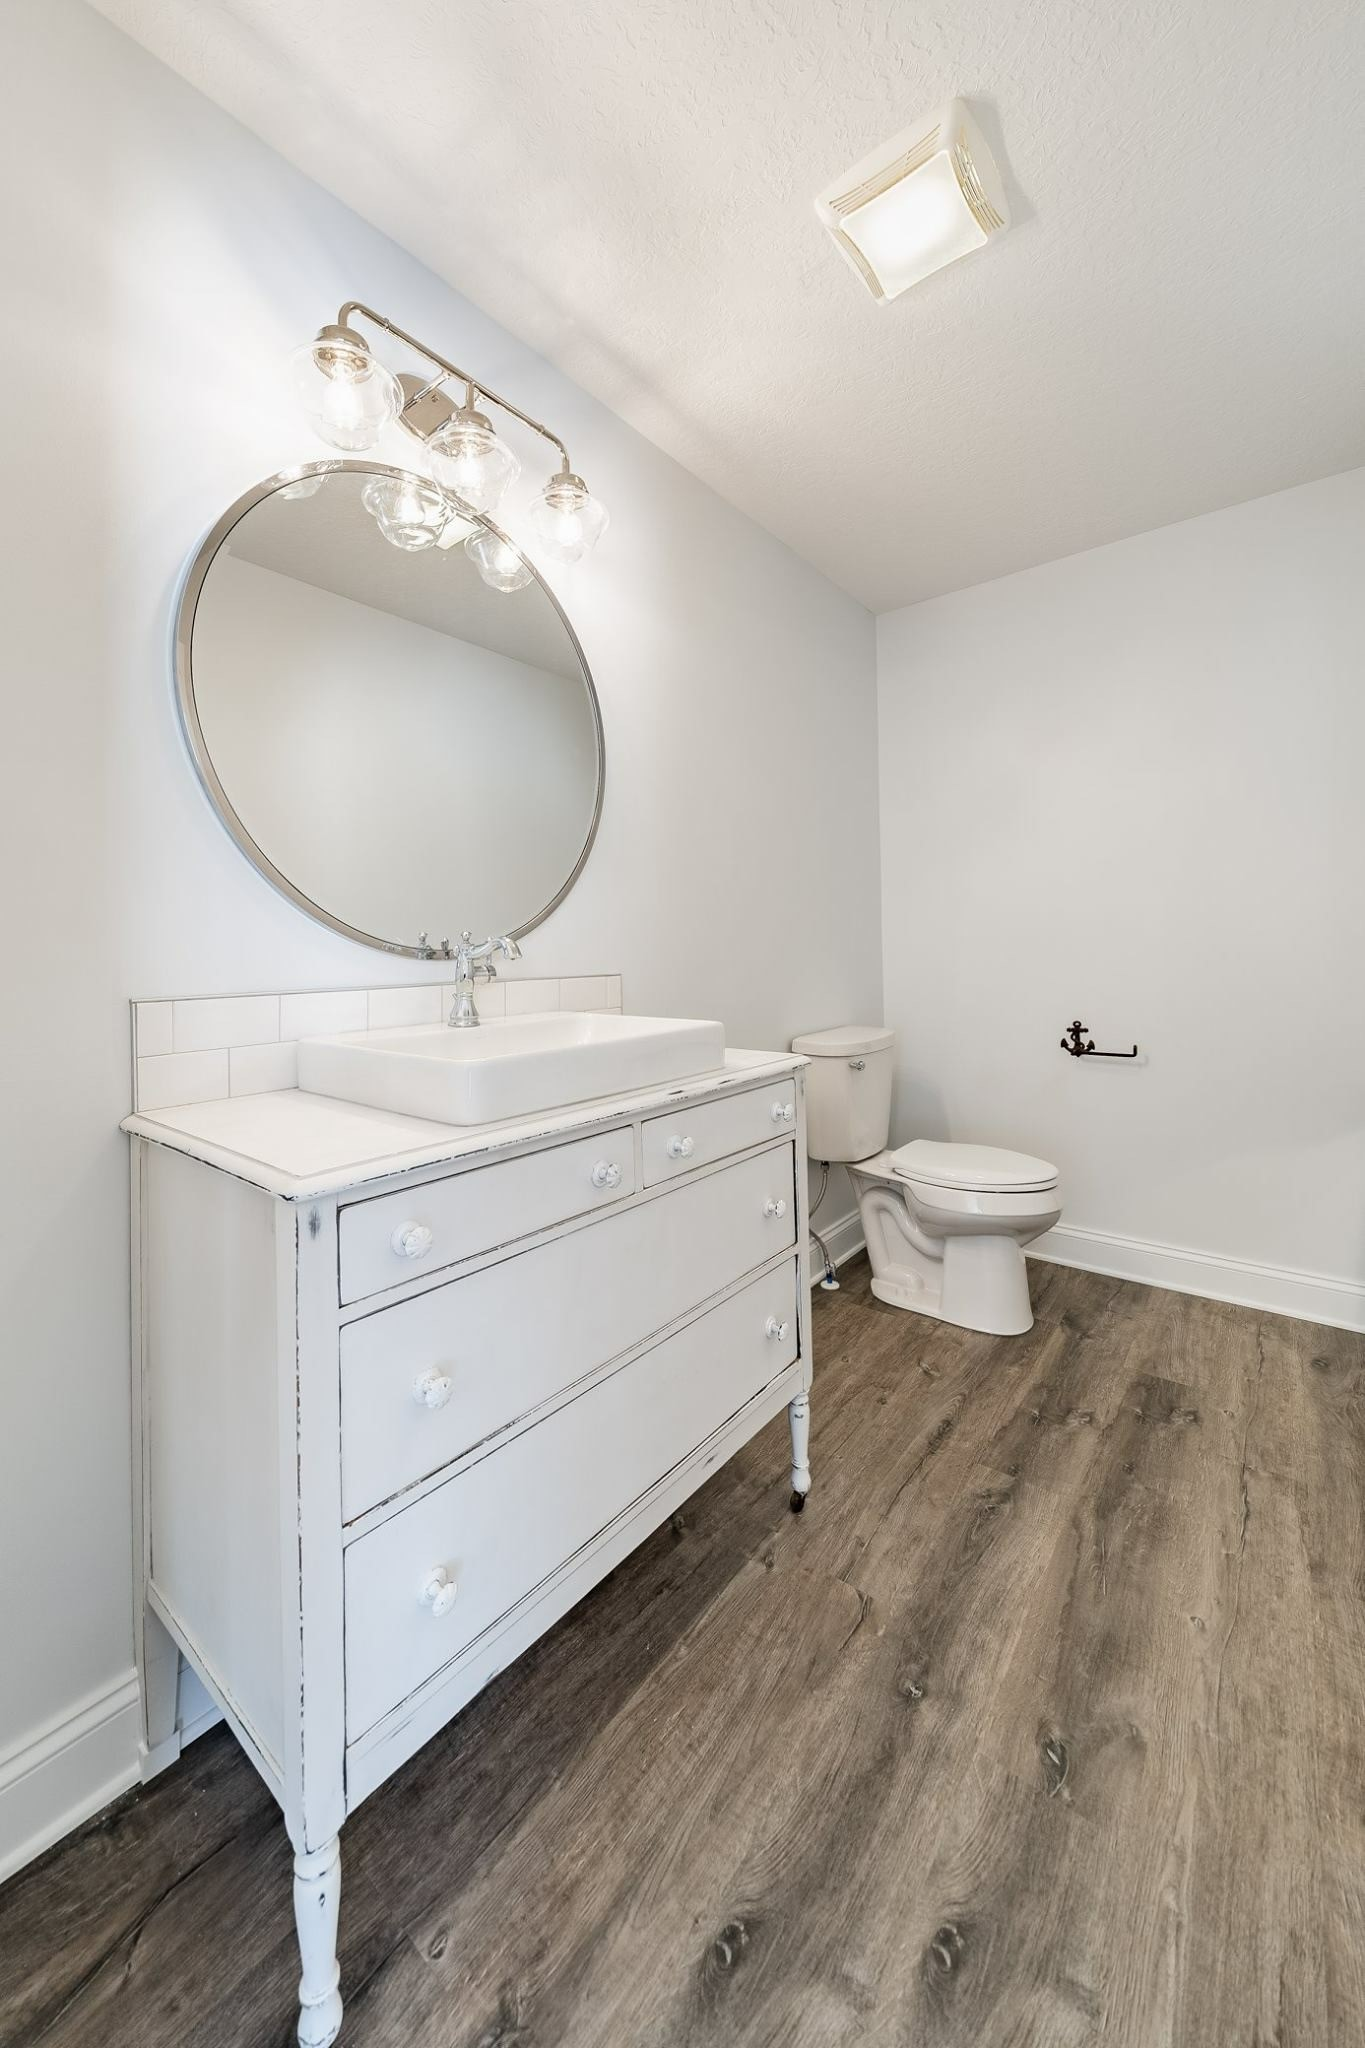 Bathroom Vinyl Plank Flooring